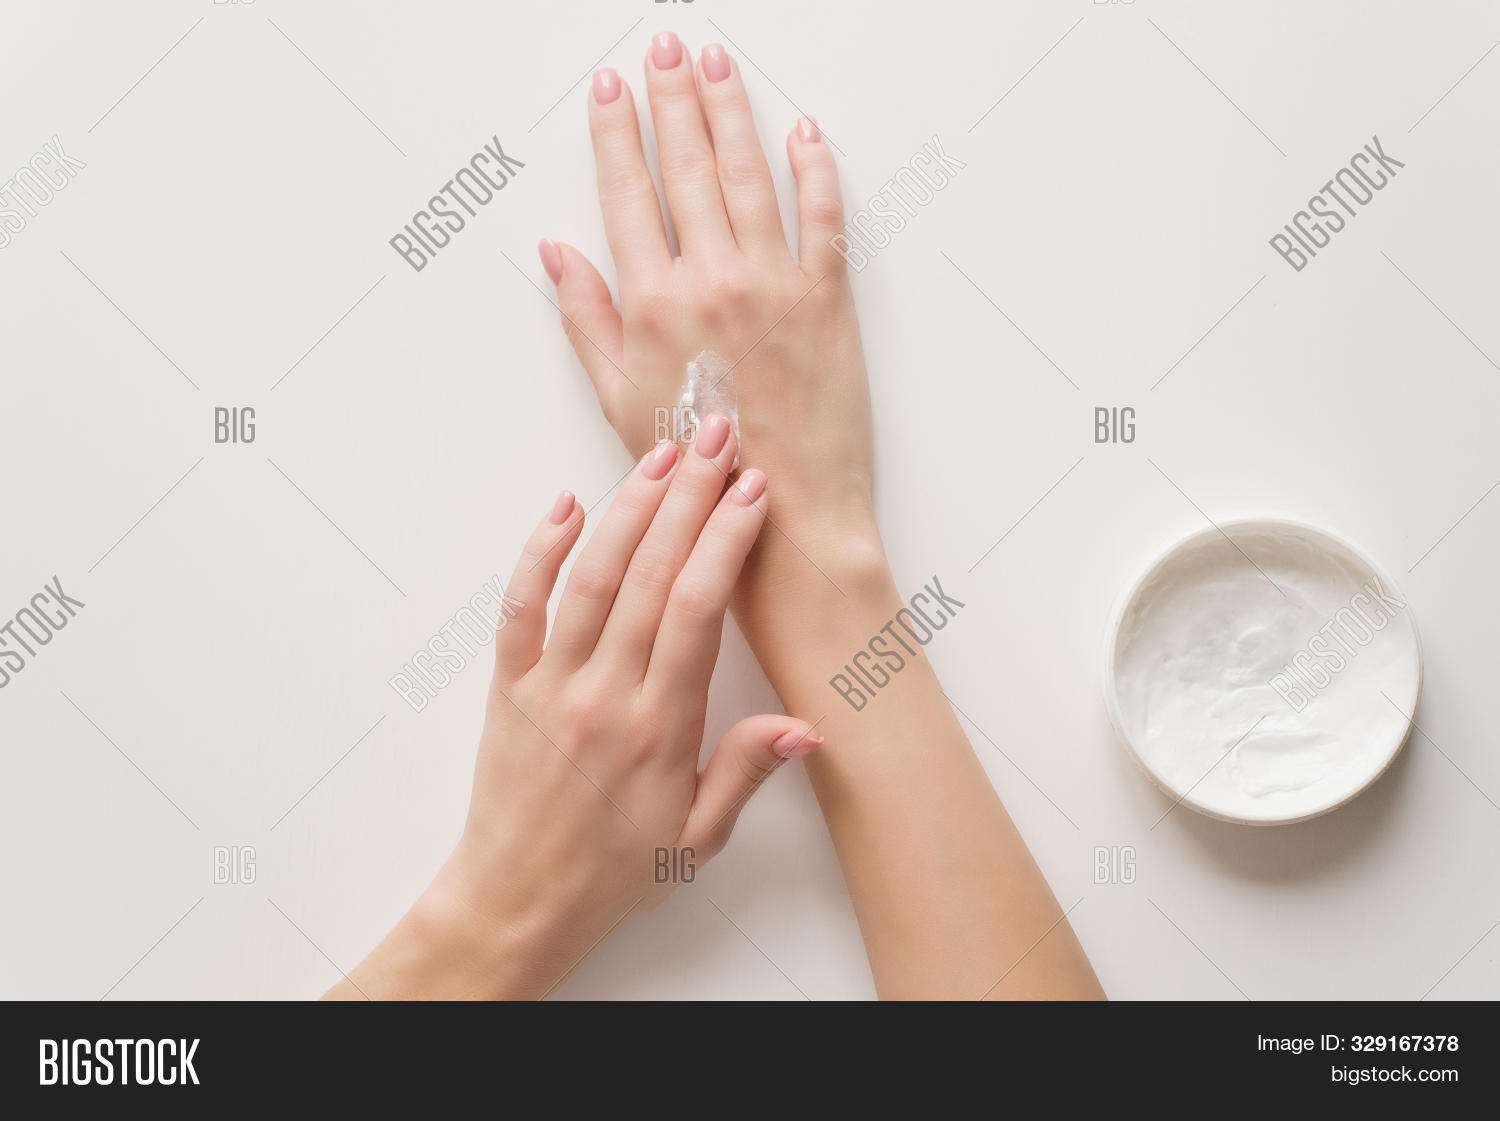 The girl distributes moisturizing cream on her hands. Hands on a white background with a jar of white cream. The concept of moisturizing, preventing skin aging.